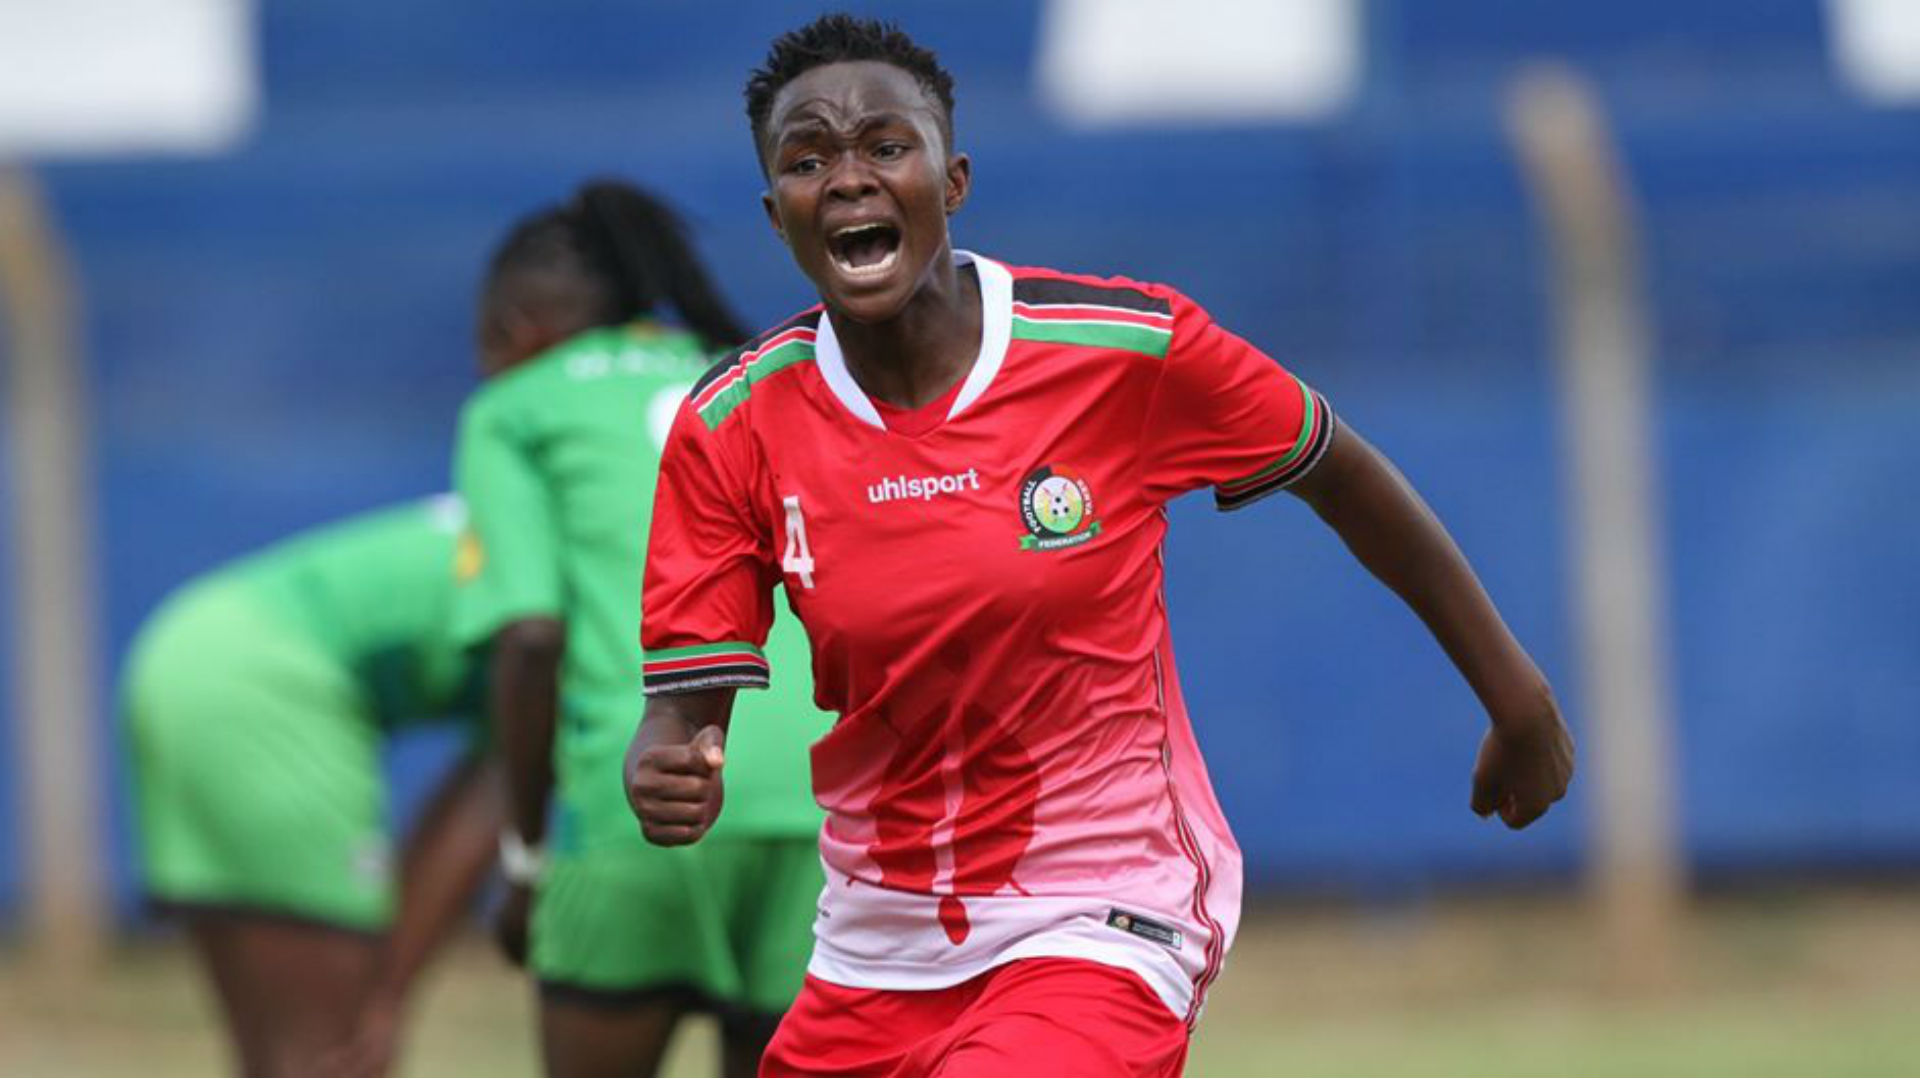 Turkish Cup: How Harambee Starlets will be aware of Chile's threat - Ouma